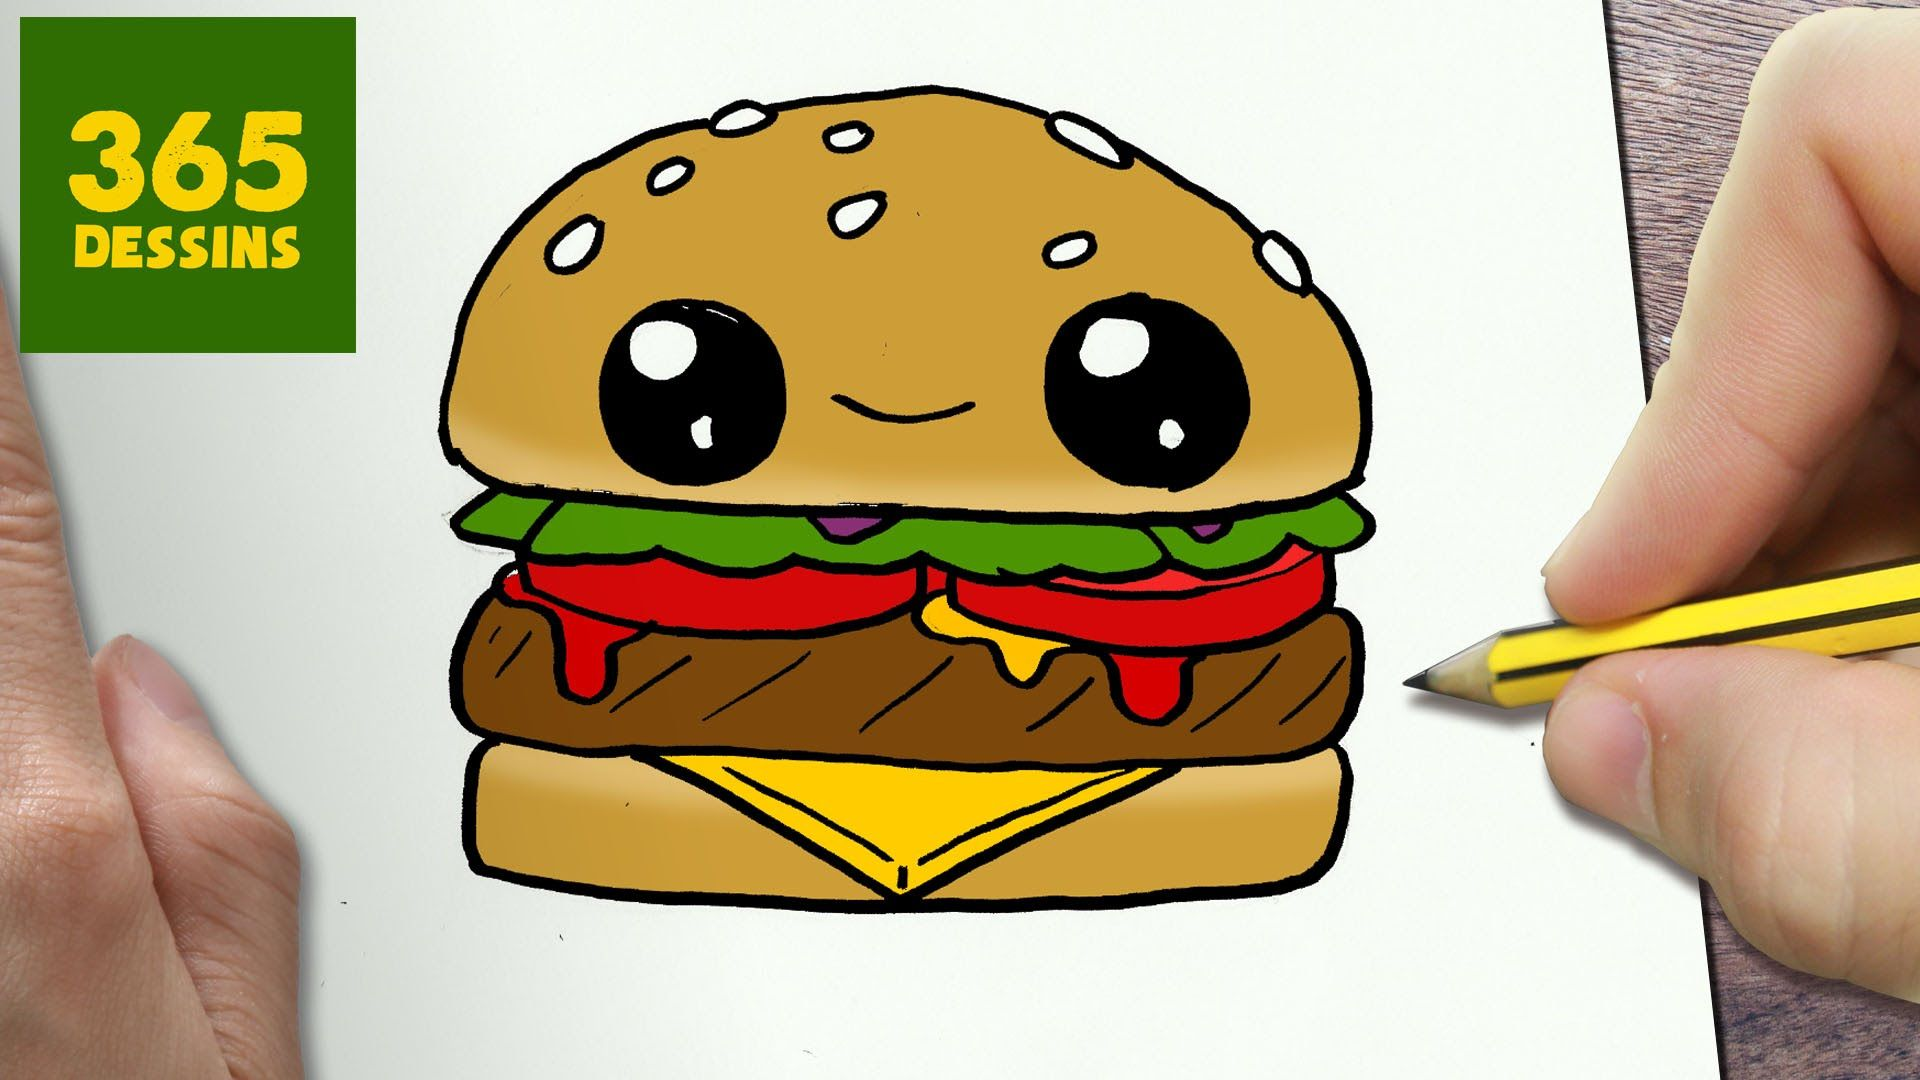 Comment Dessiner Hamburger Kawaii Etape Par Etape Dessins Kawaii